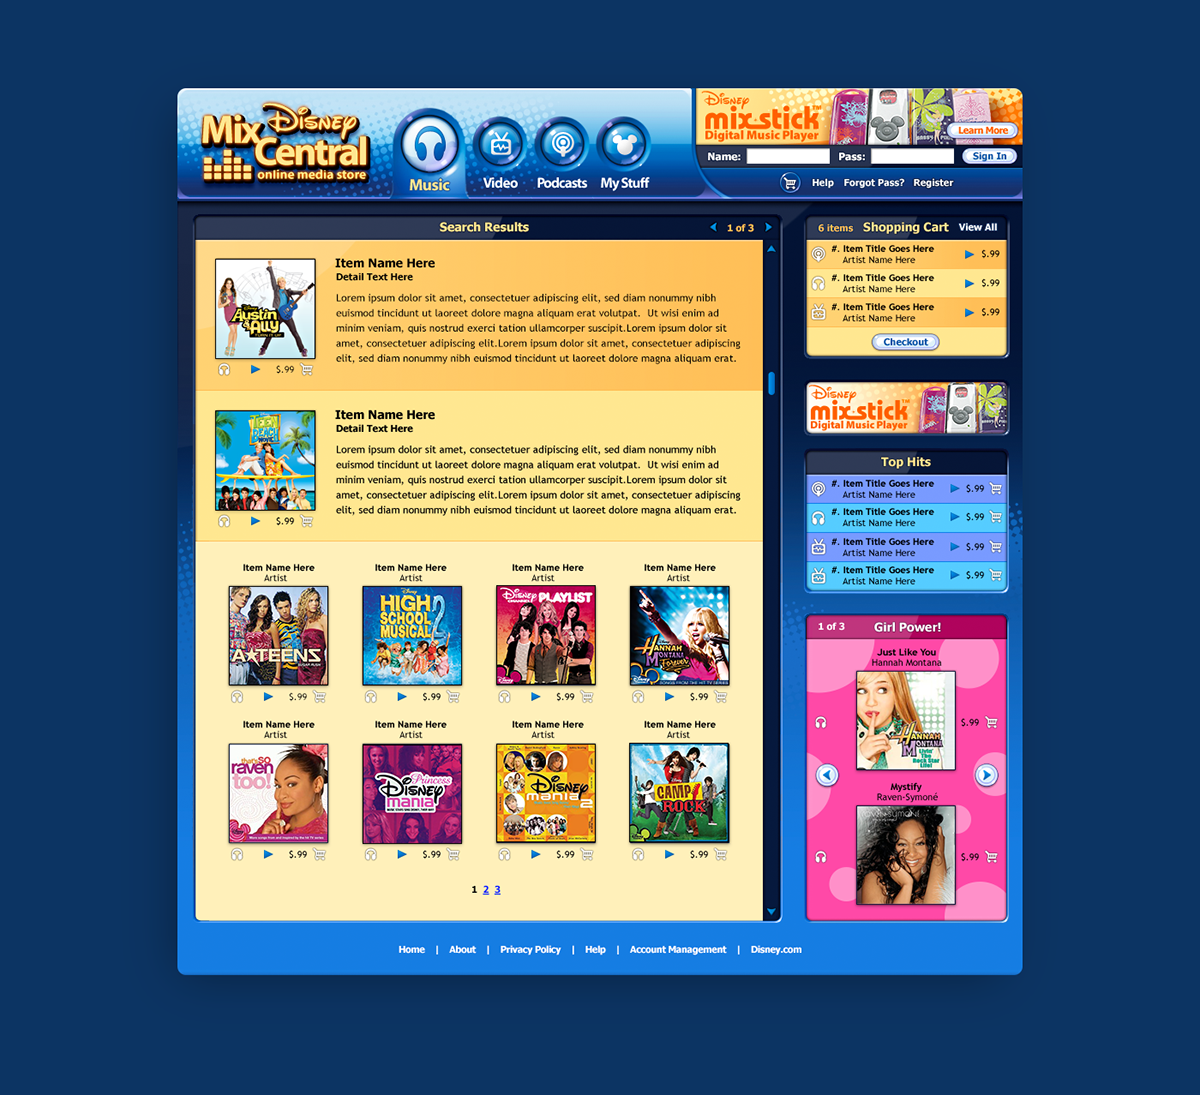 The Skins Factory, Inc  - Disney Mix Central: Online Music Store